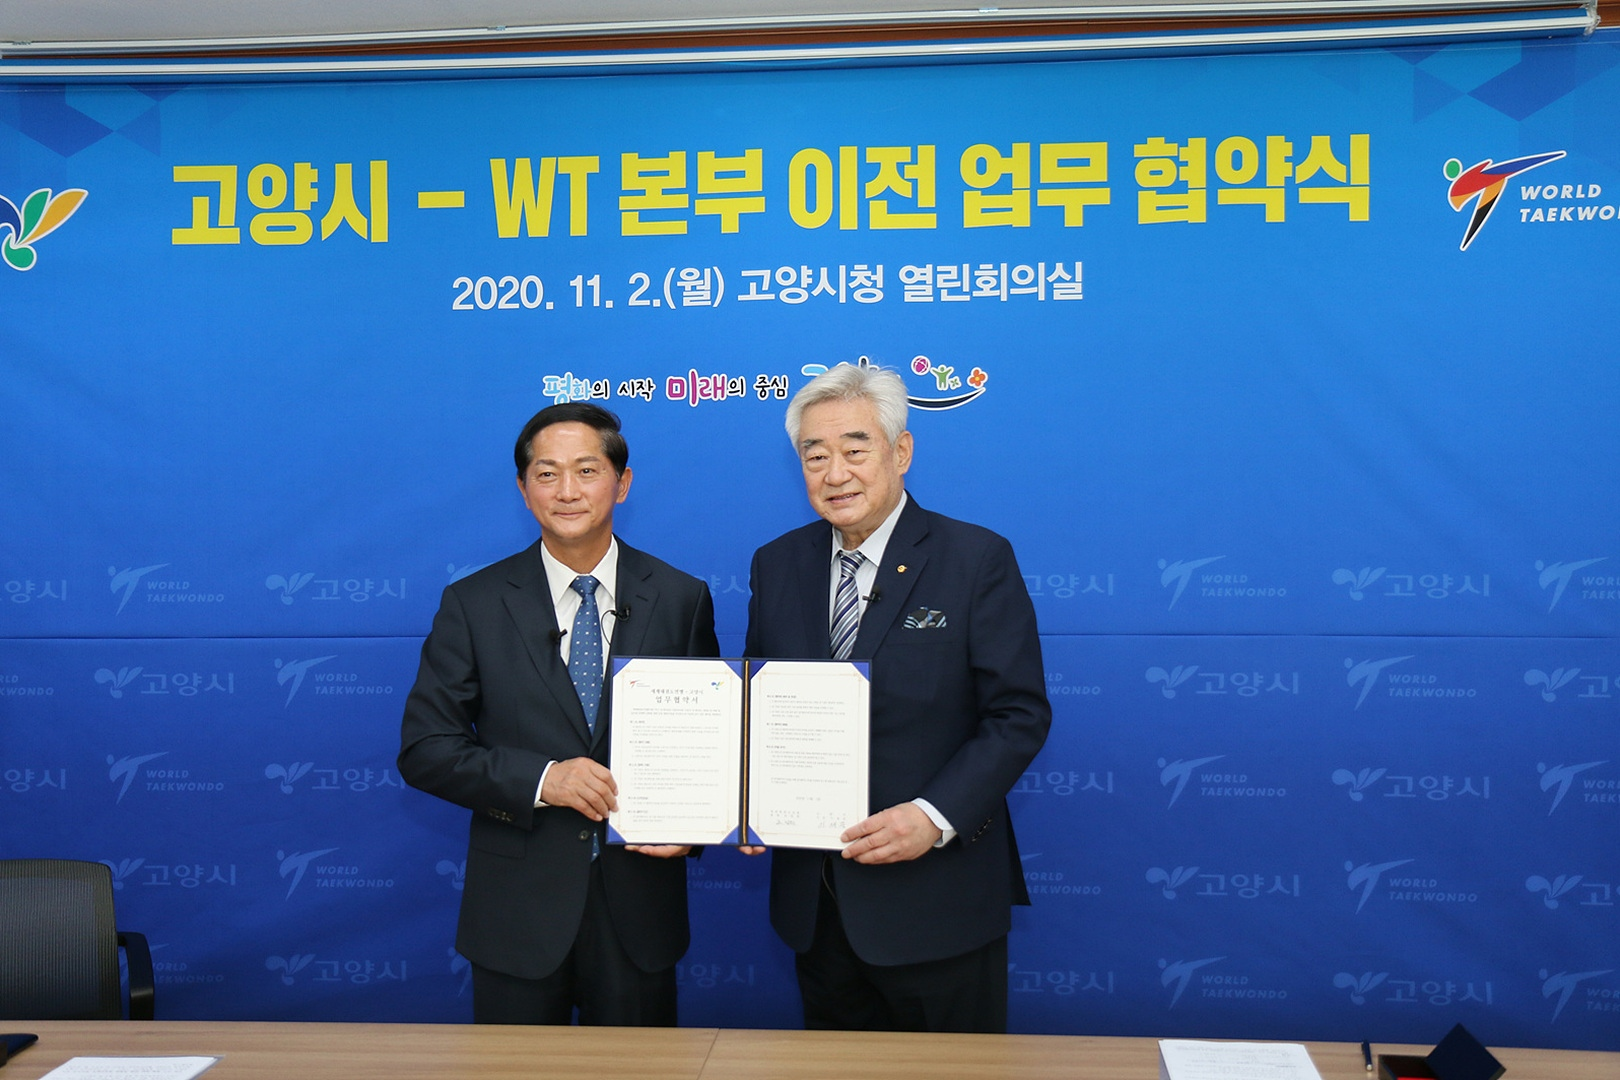 Foto: World Taekwondo President Chungwon Choue and Goyang Mayor Lee Jae-joon